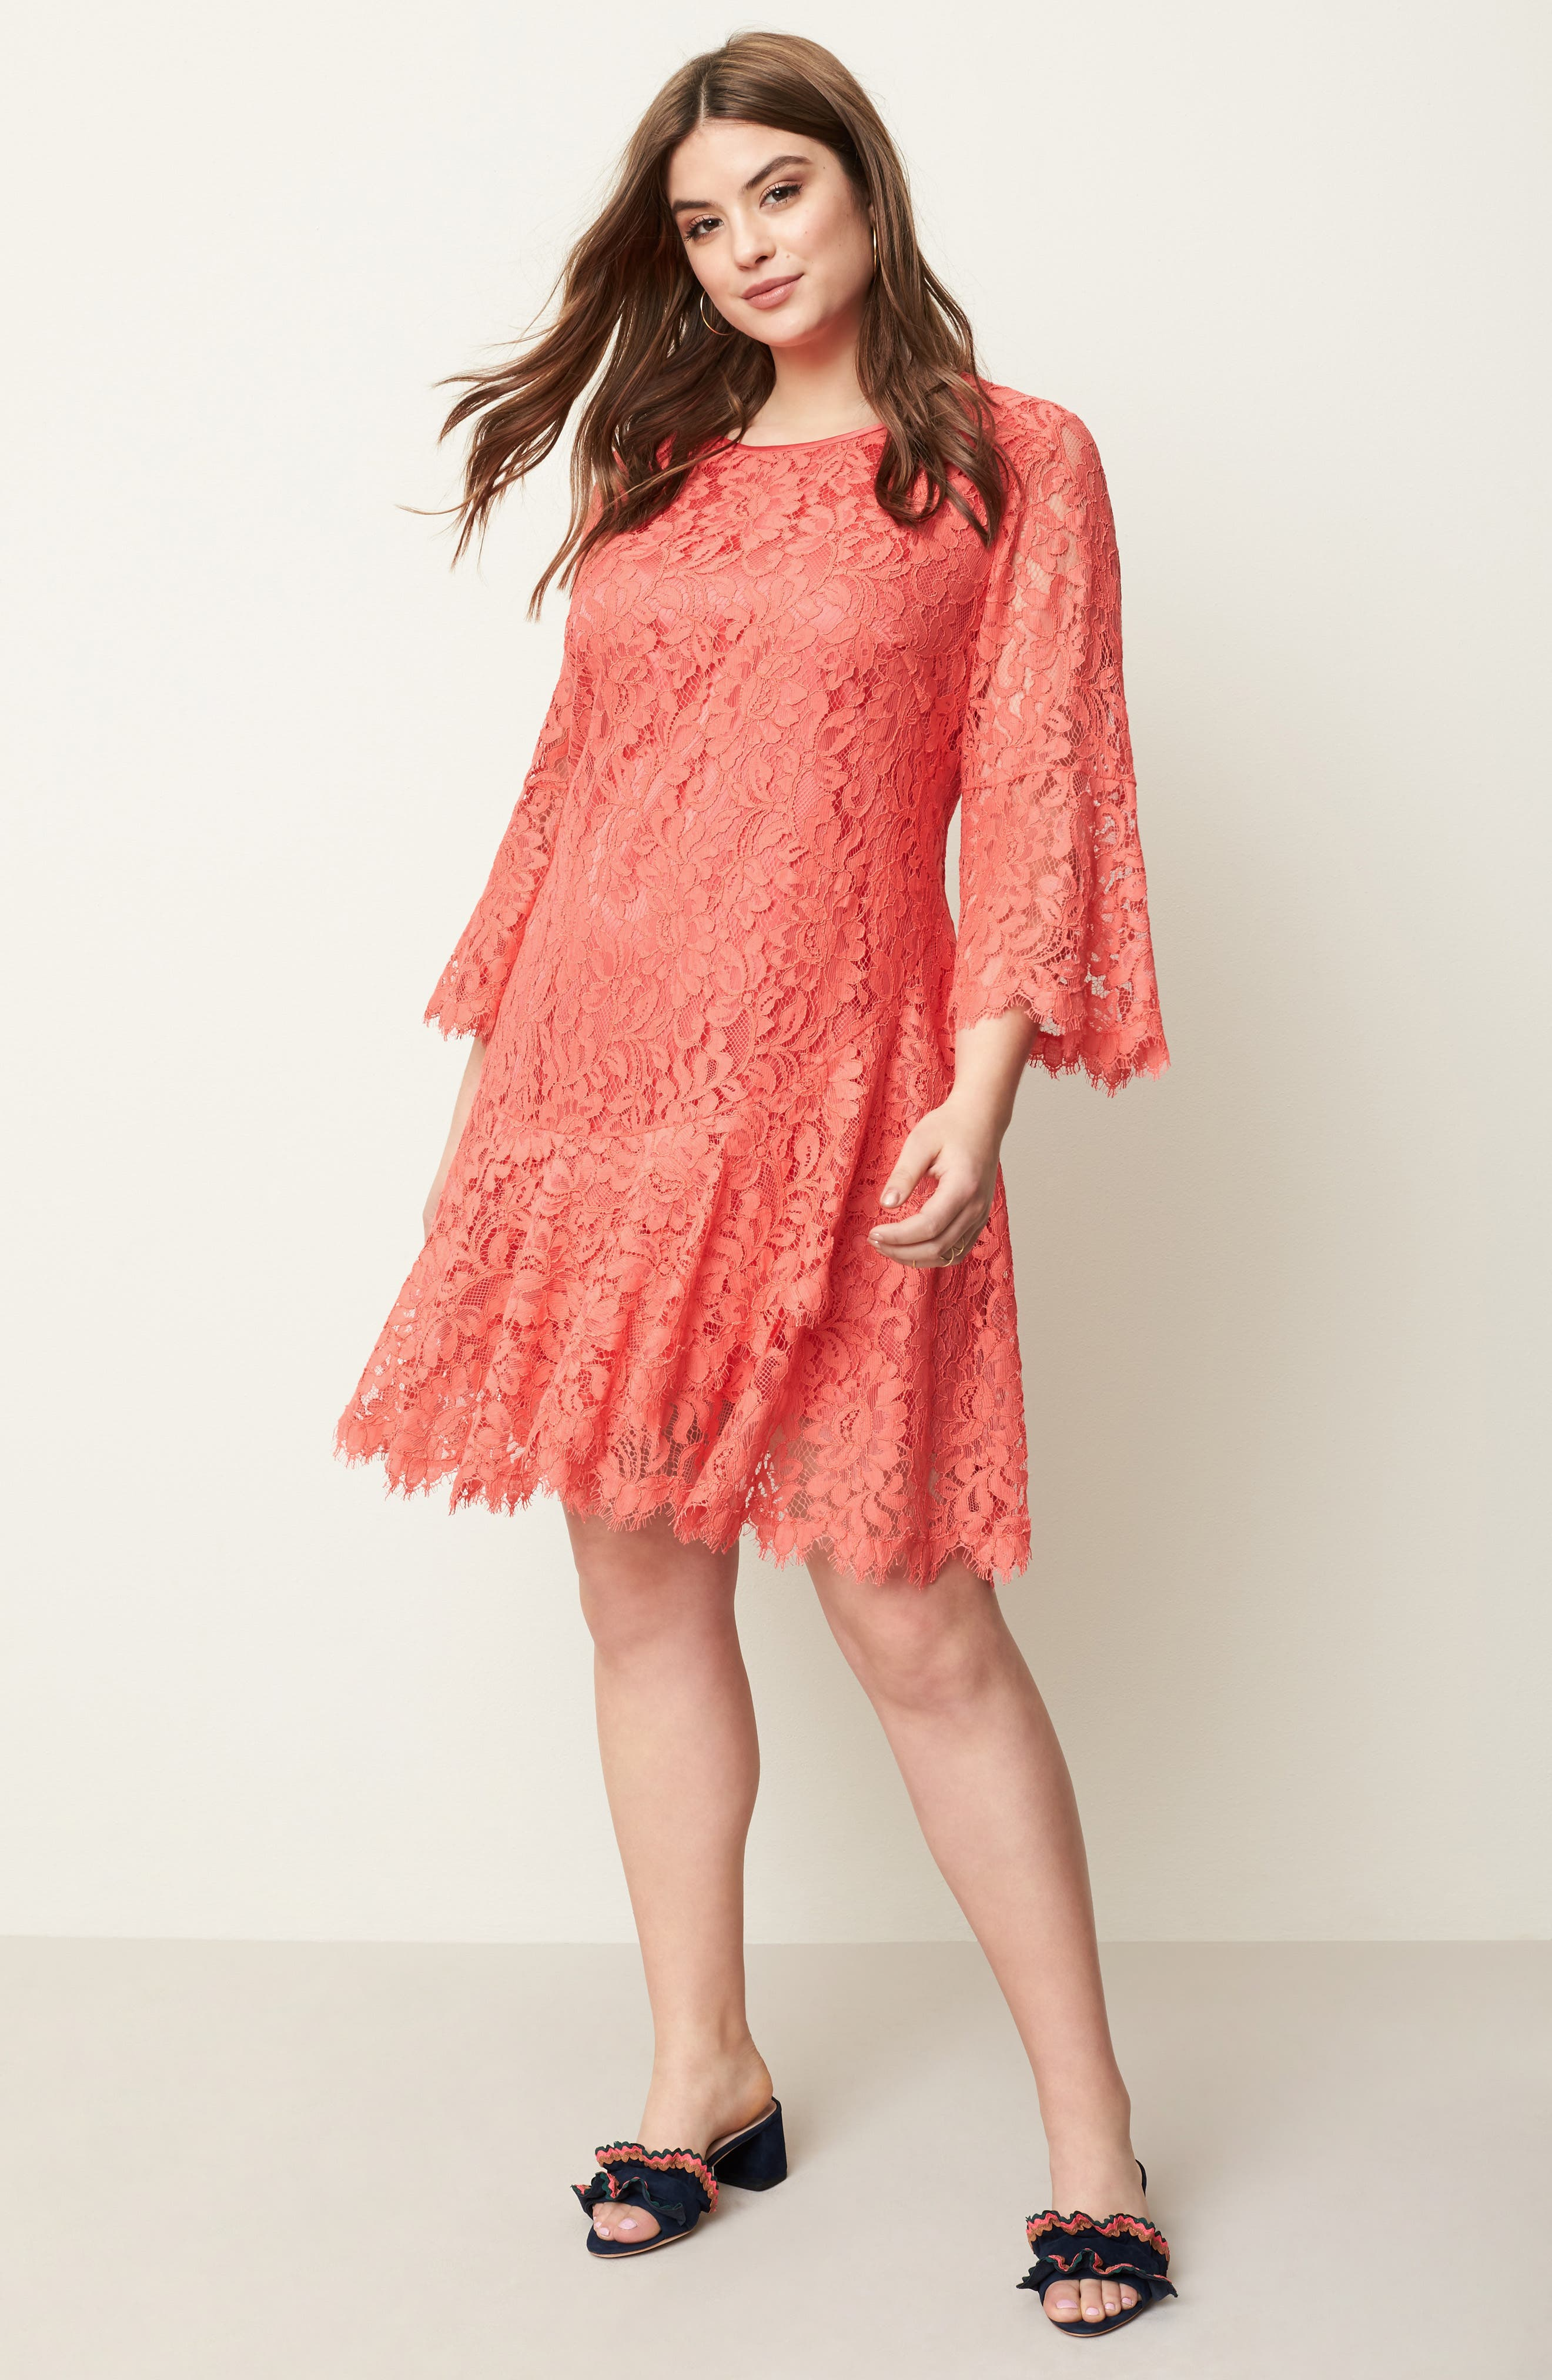 Bell Sleeve Lace Shift Dress,                             Alternate thumbnail 7, color,                             651